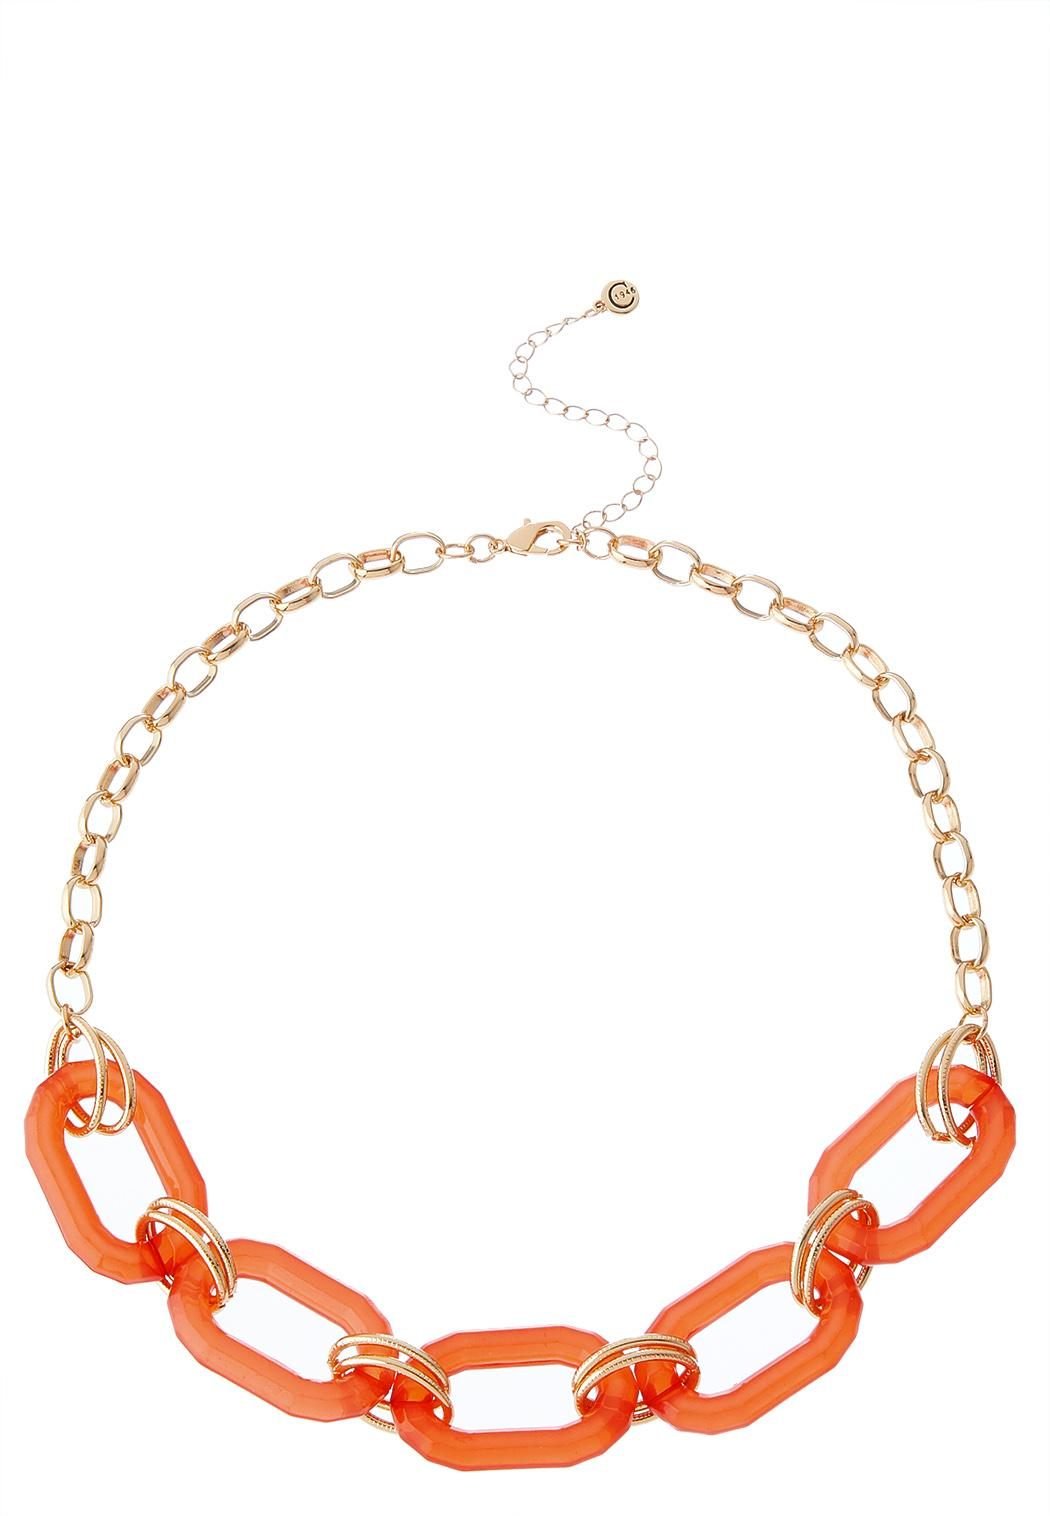 Lucite Links Chain Necklace